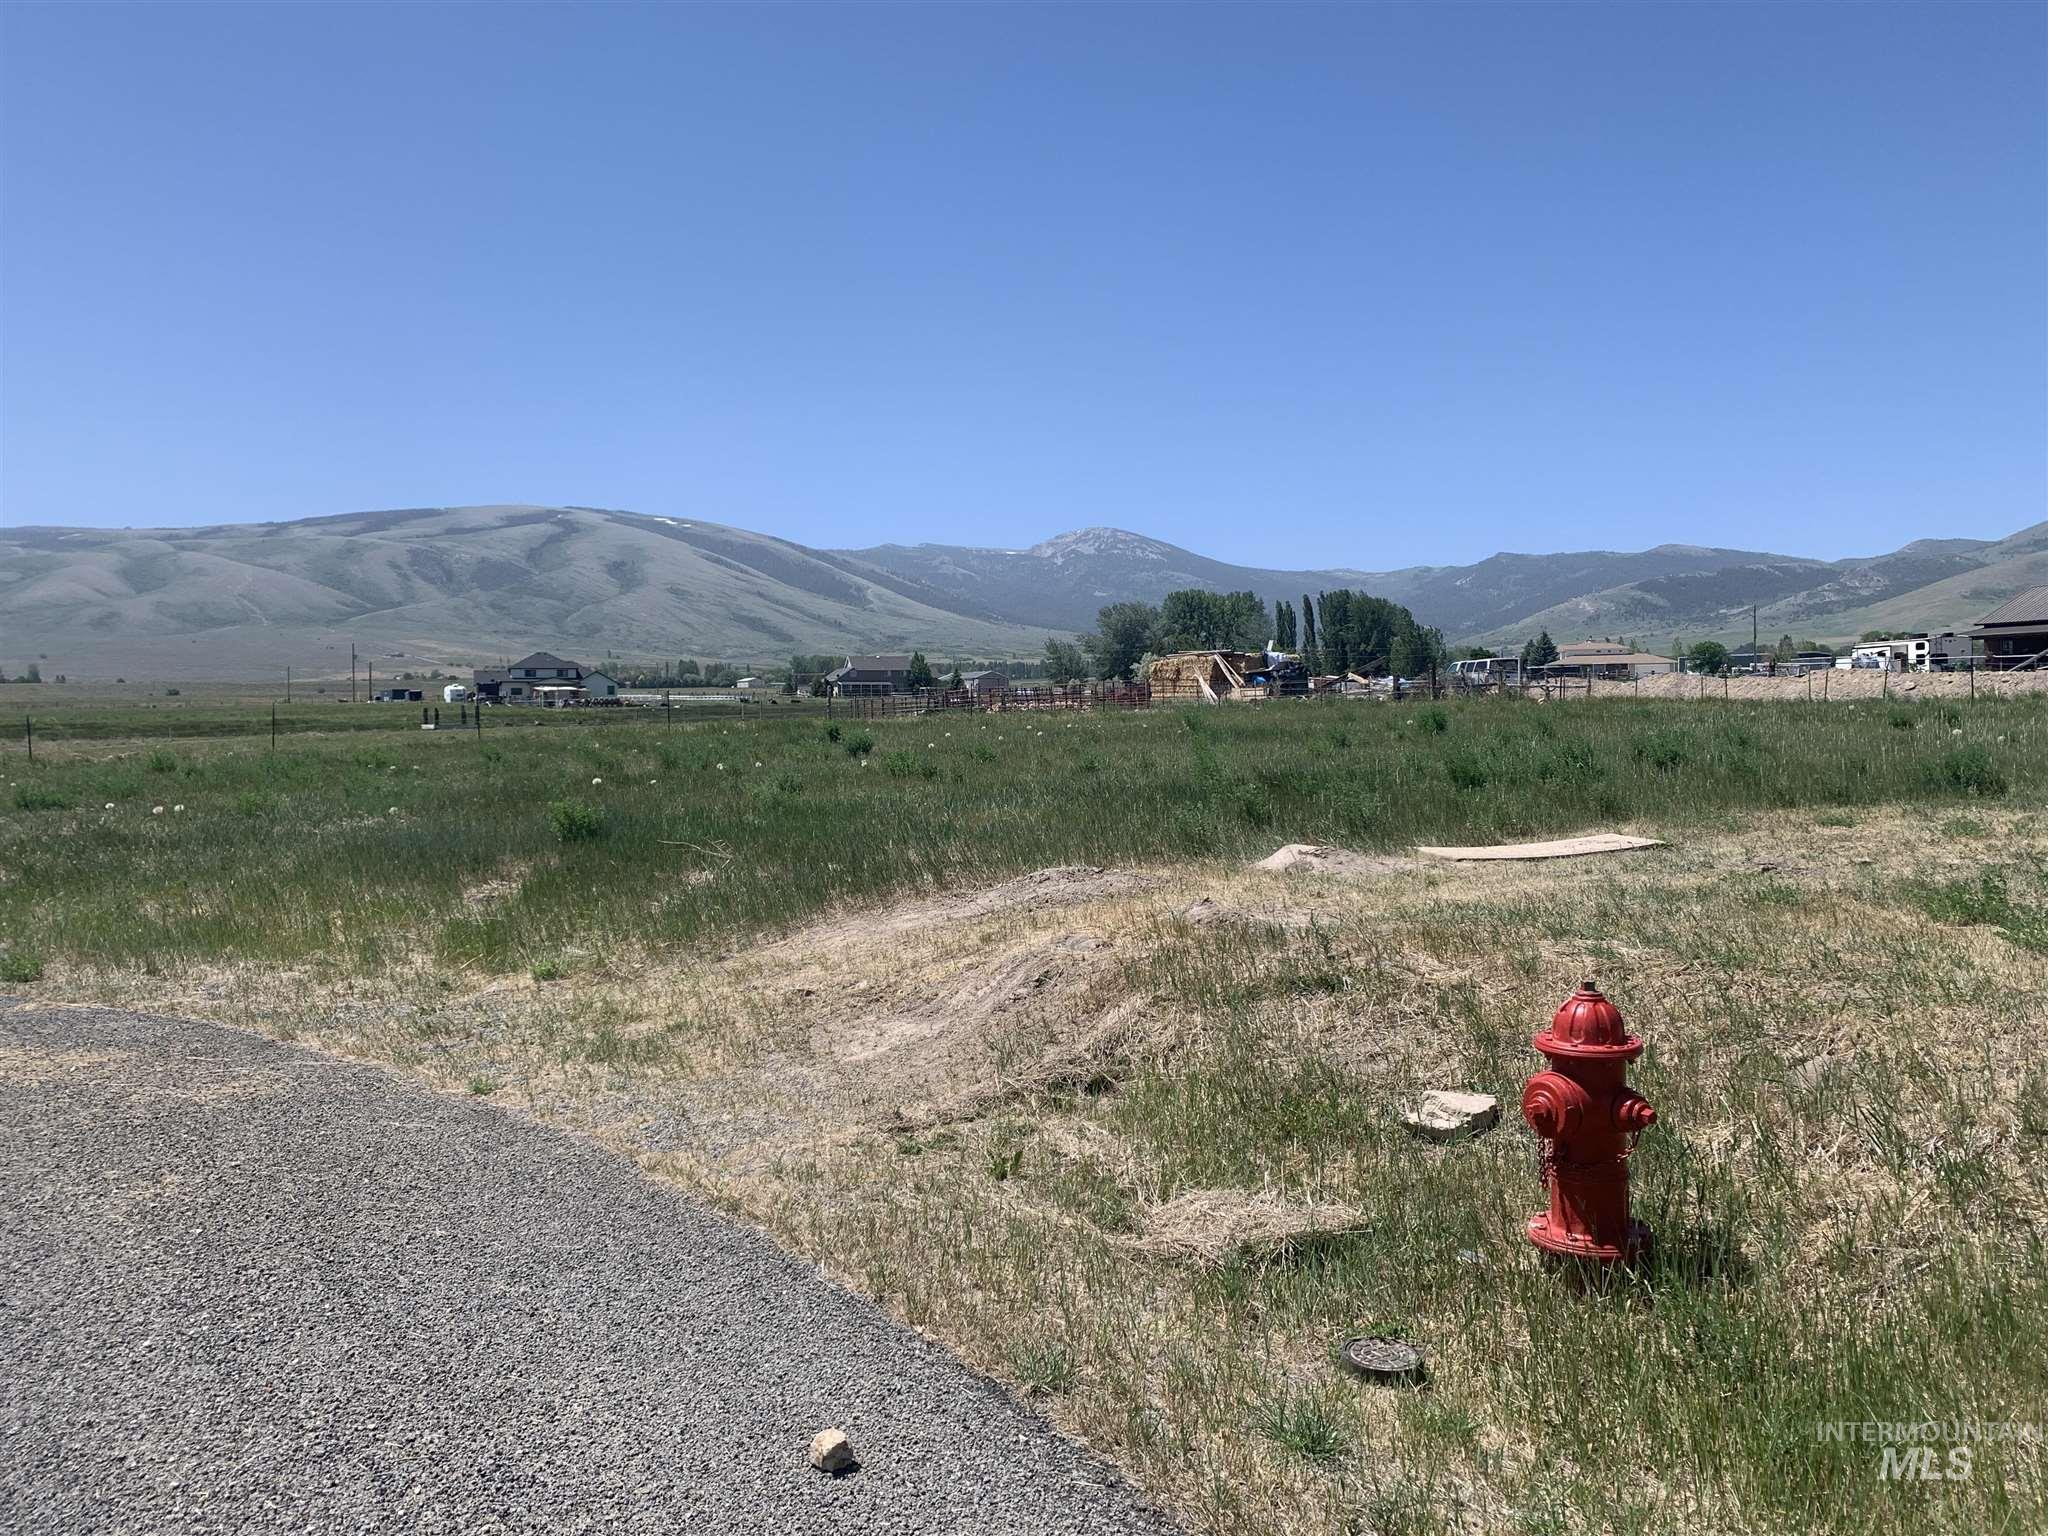 Great building lot in the beautiful city of Albion. Tremendous views in all directions. Wonderful place to live and raise a family. - Jack H Hill, Voice: 208-431-4700, Western Hills Realty, Main: 208-678-9300, http://www.westernhillsrealty.net